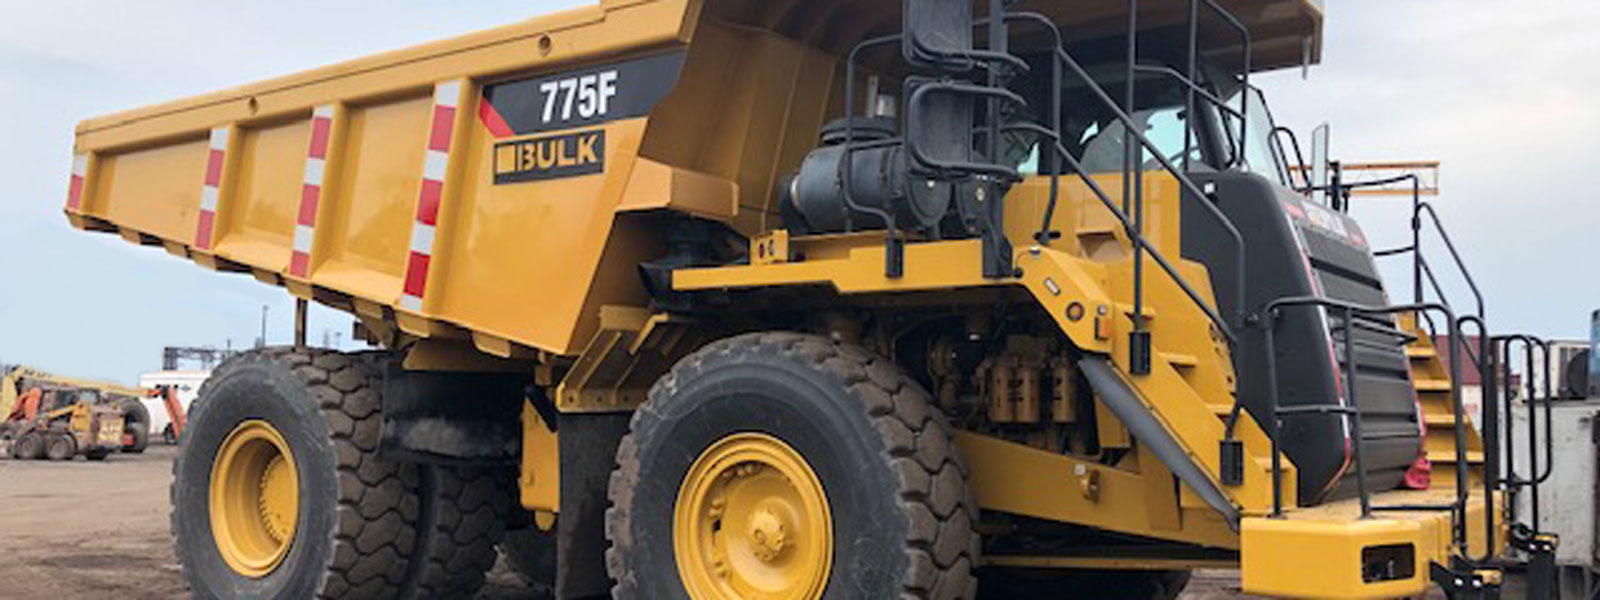 775f Haul Truck At Project Site